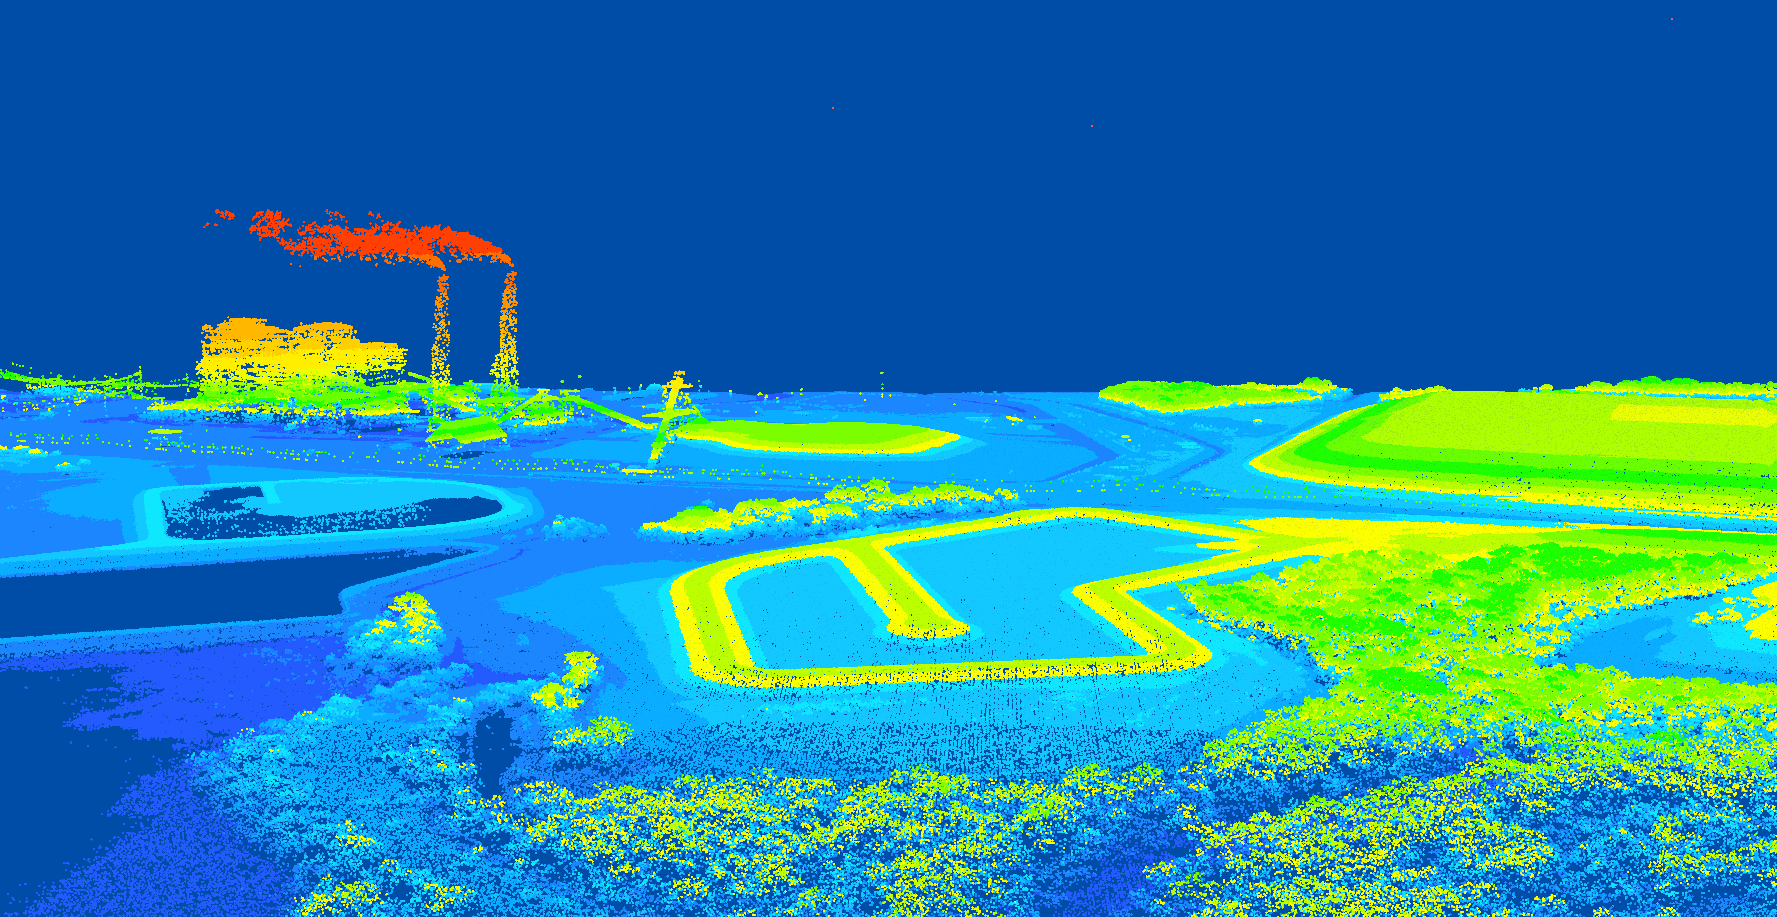 Lidar and topographic mapping solution